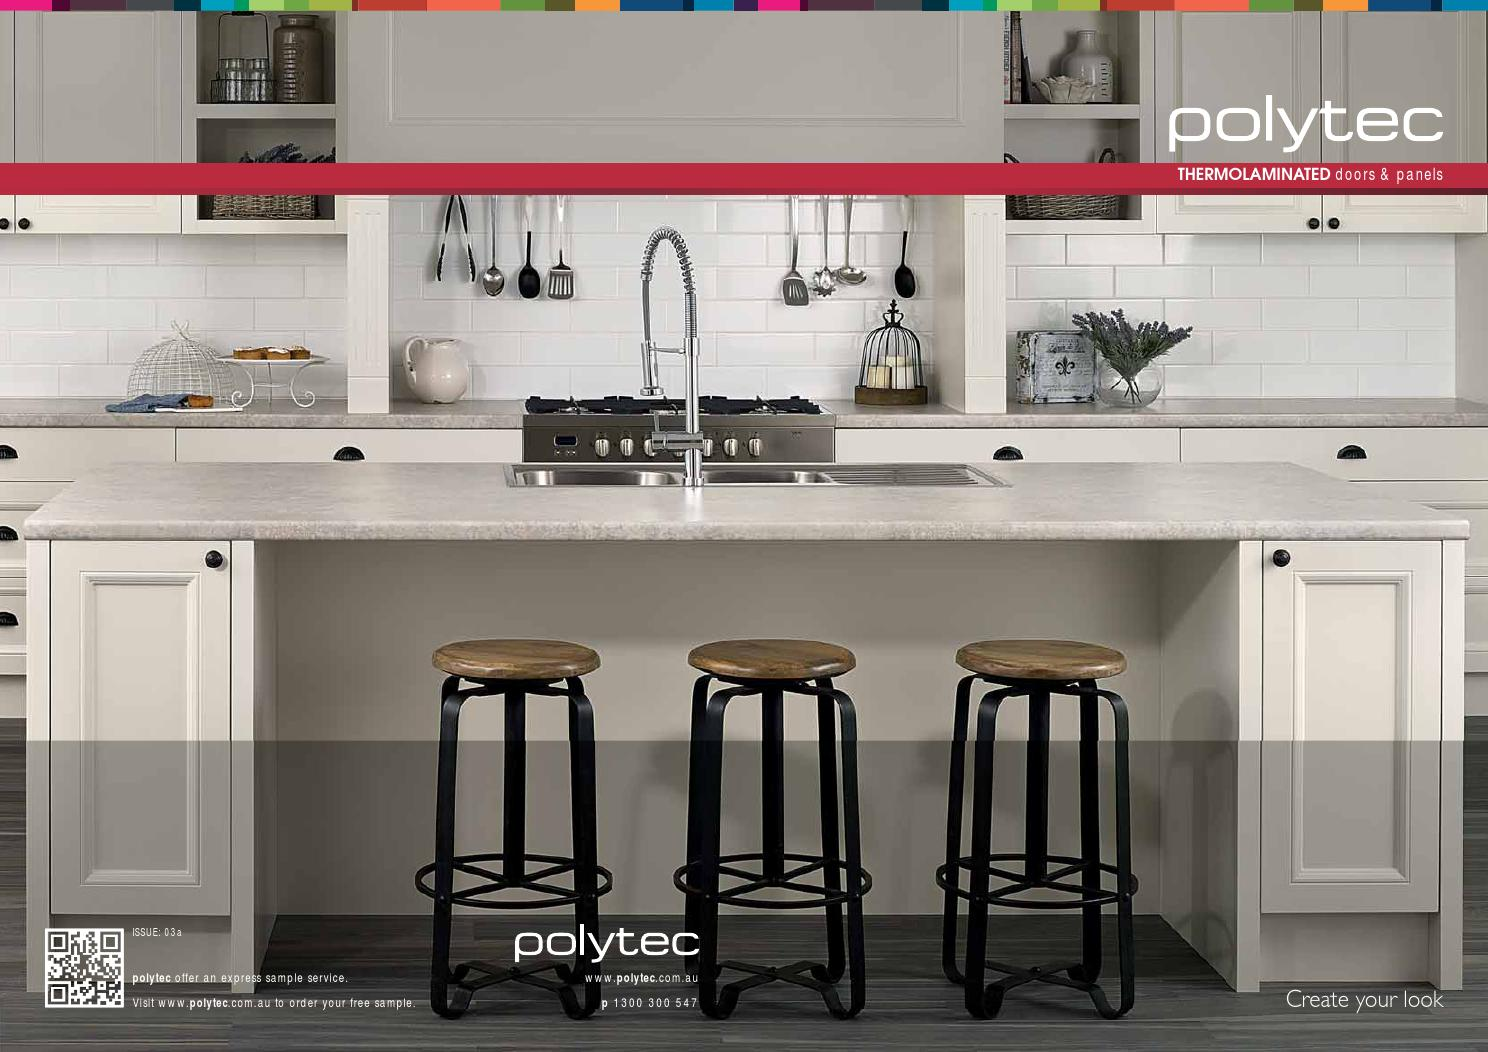 Kitchens U Build Polytec Thermo Doors By Kitchens U Build